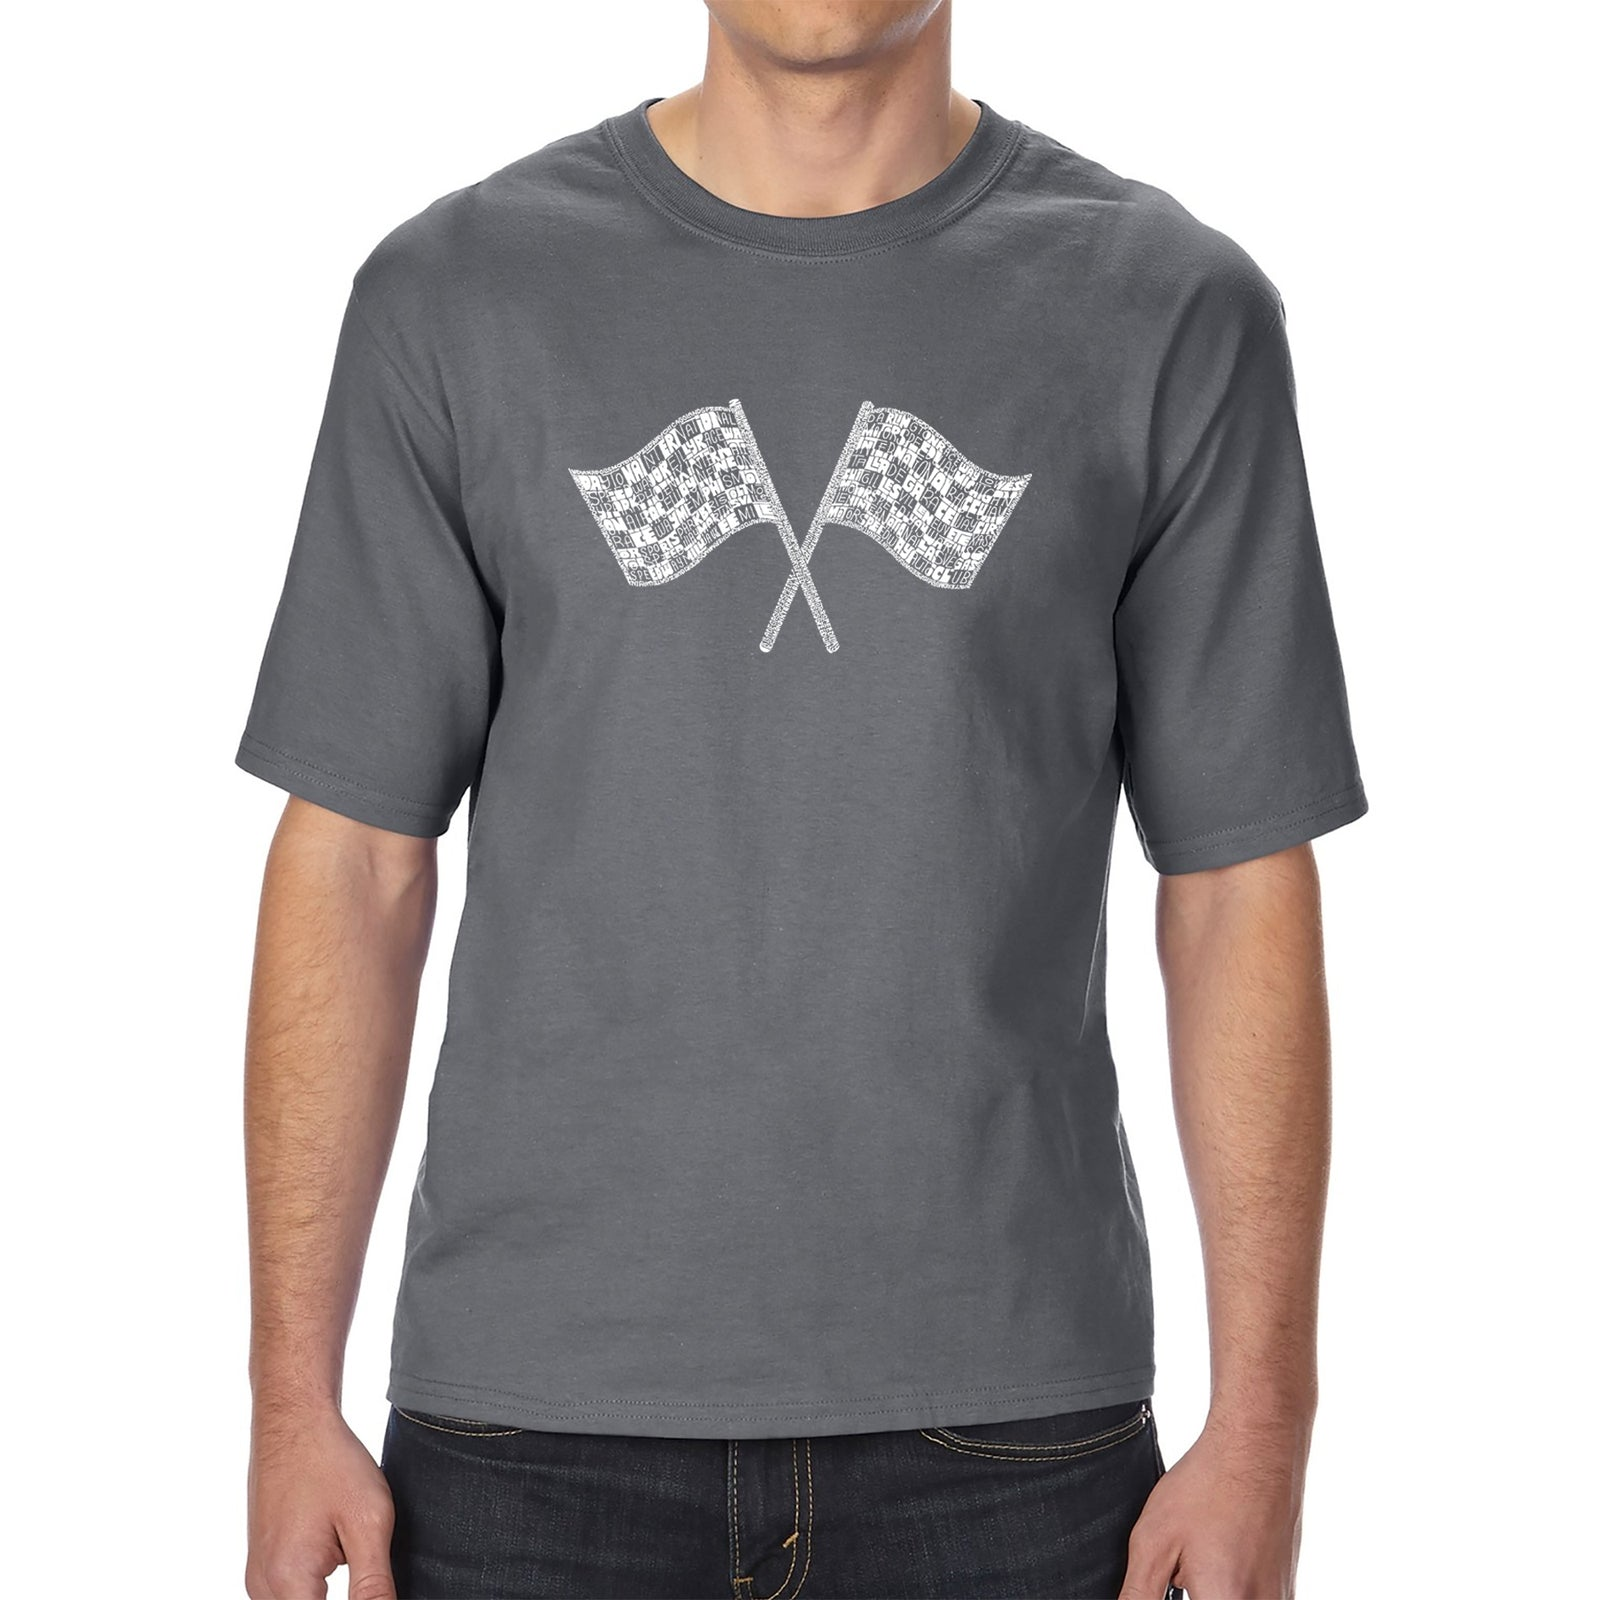 Men's Tall and Long Word Art T-shirt - NASCAR NATIONAL SERIES RACE TRACKS